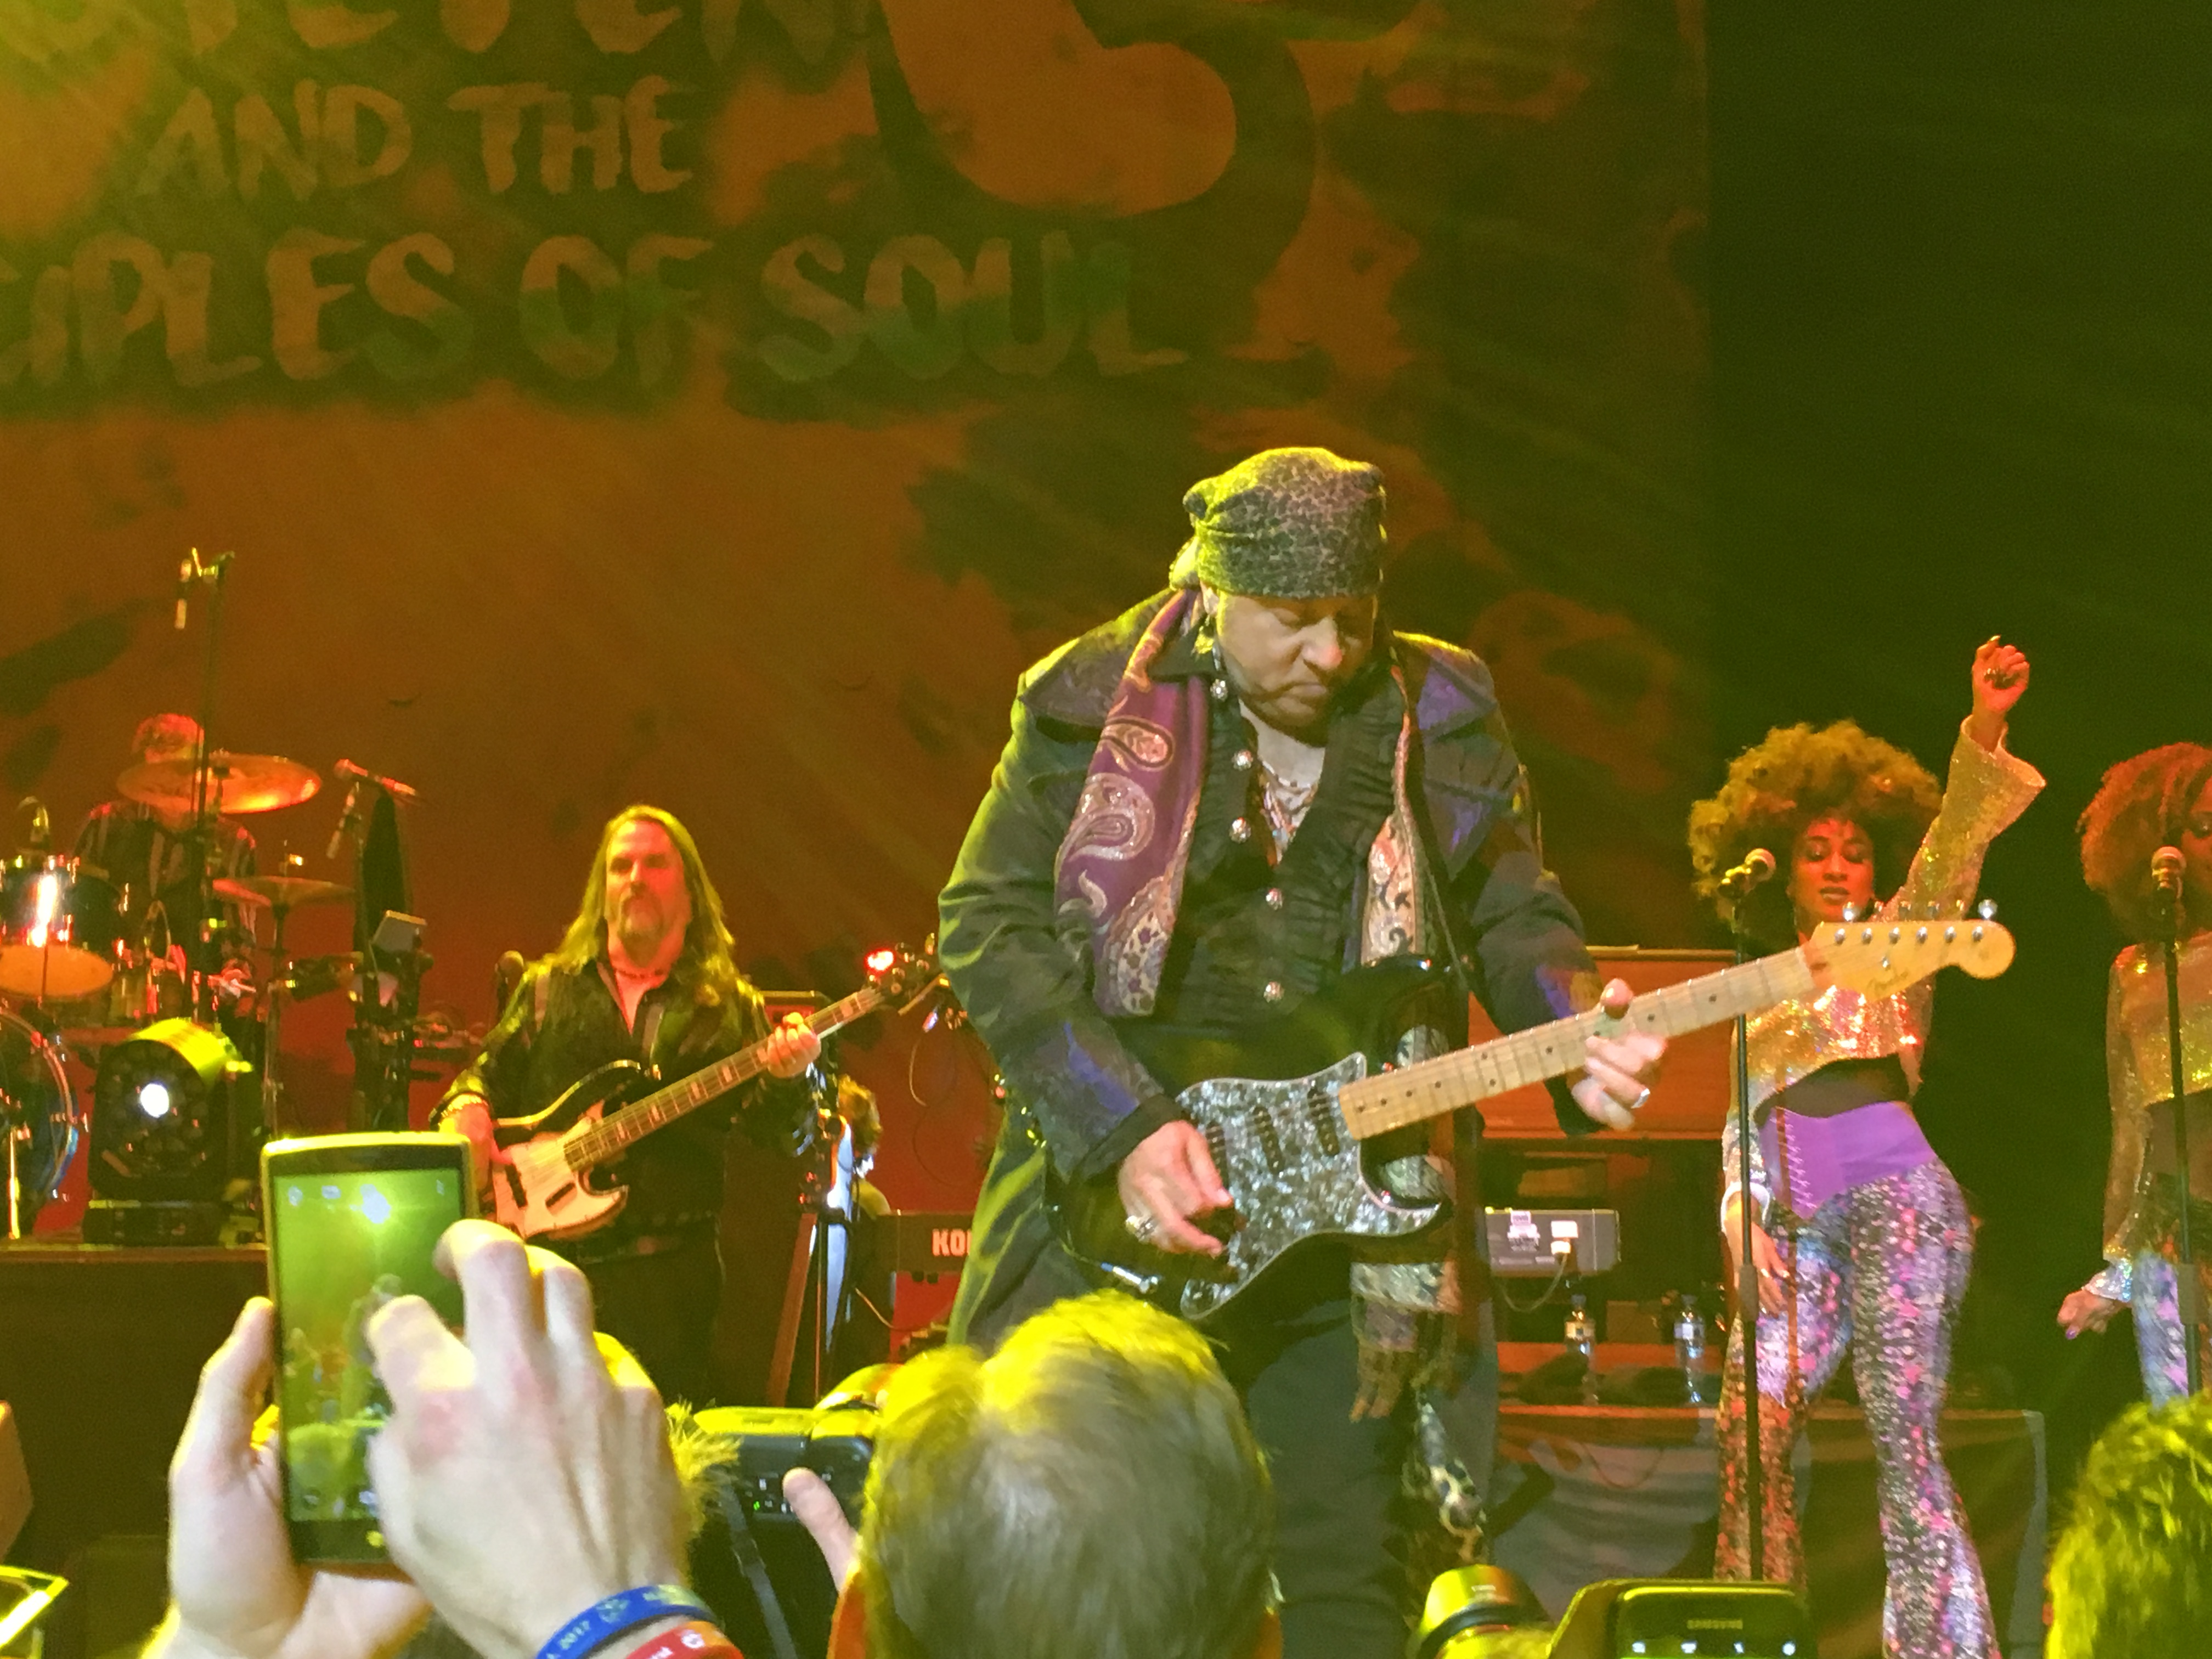 Concertreview: Little Steven & The Disciples of Soul – together we will make our stand